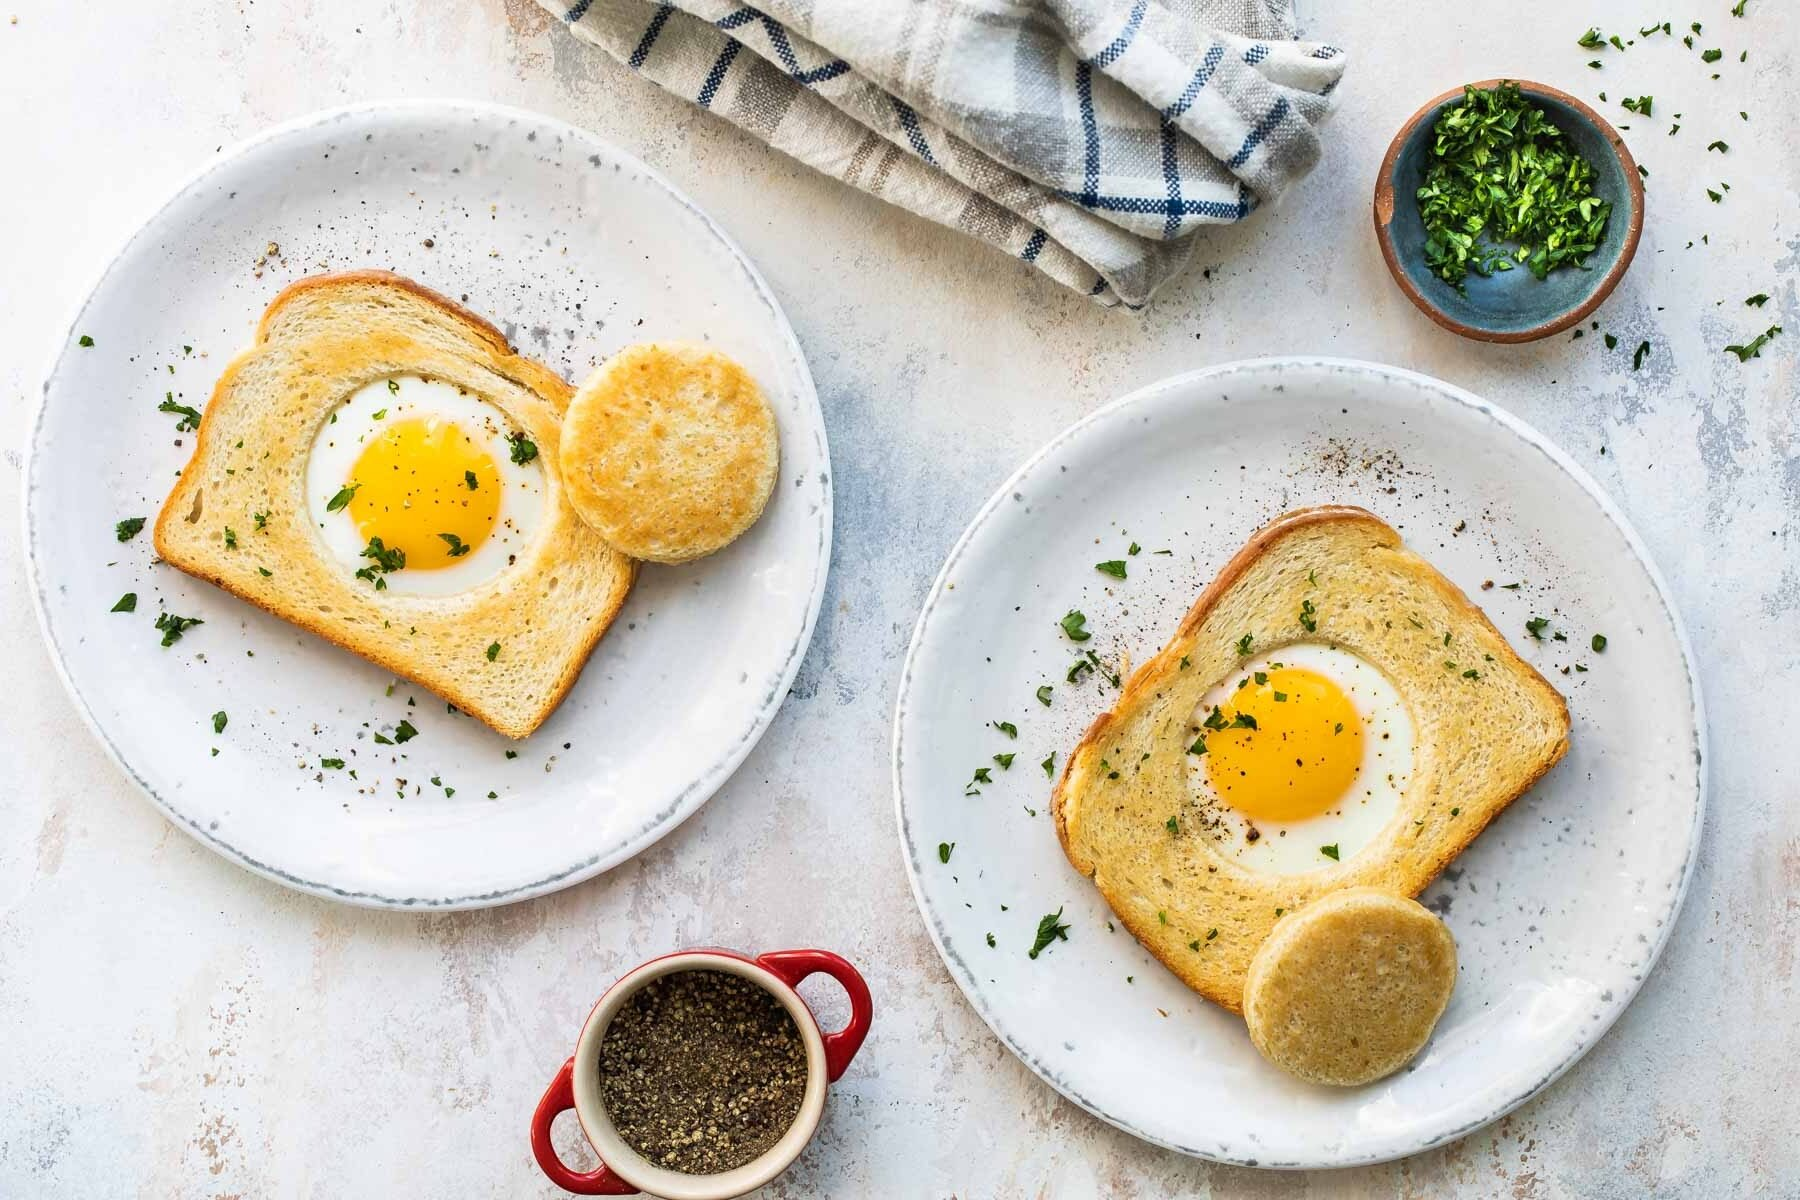 An egg cooked into a piece of bread.